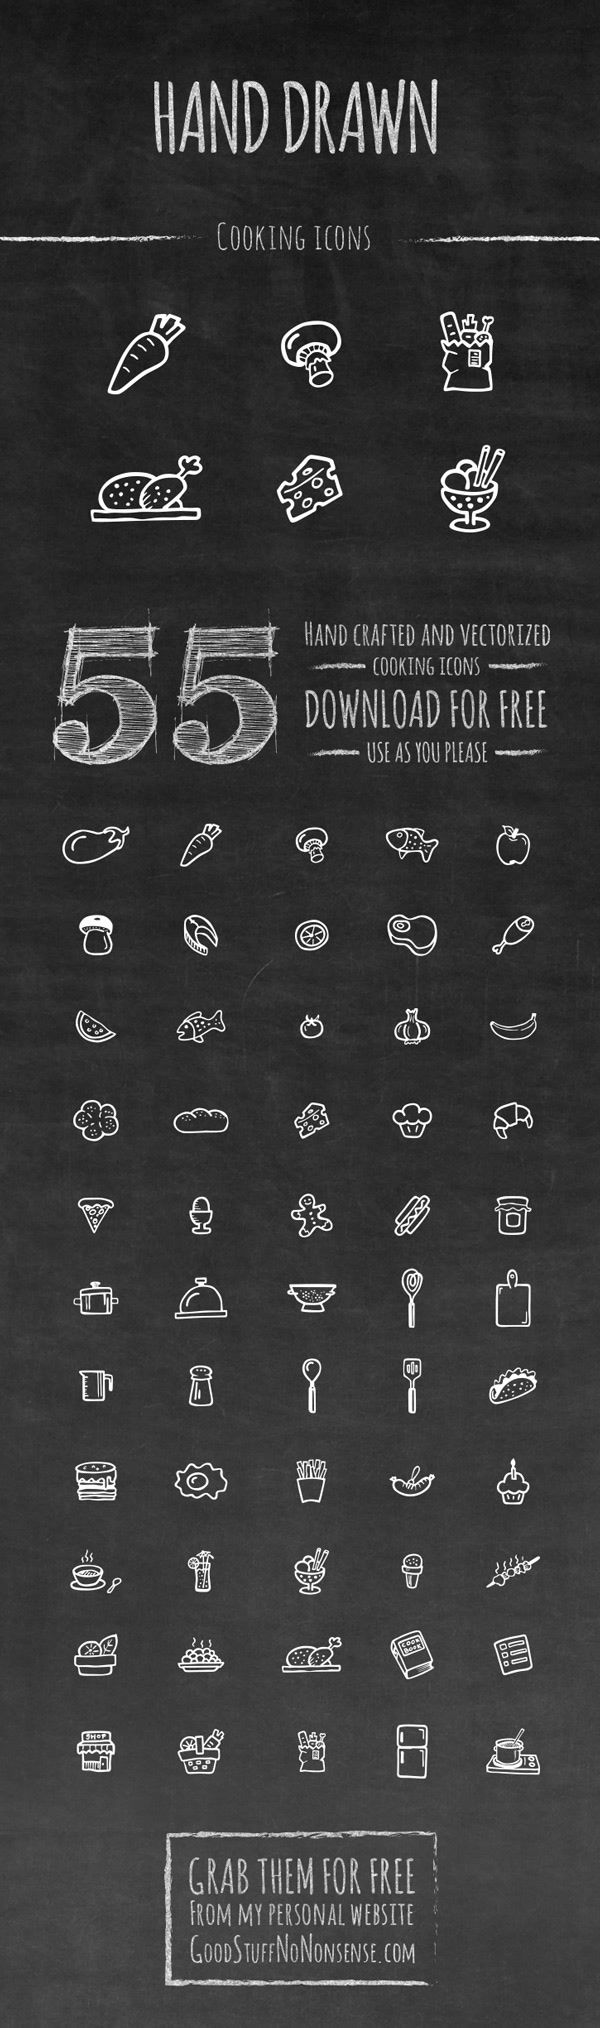 FREE COOKING ICON SET - Hope it can help with your design. Feel free ...